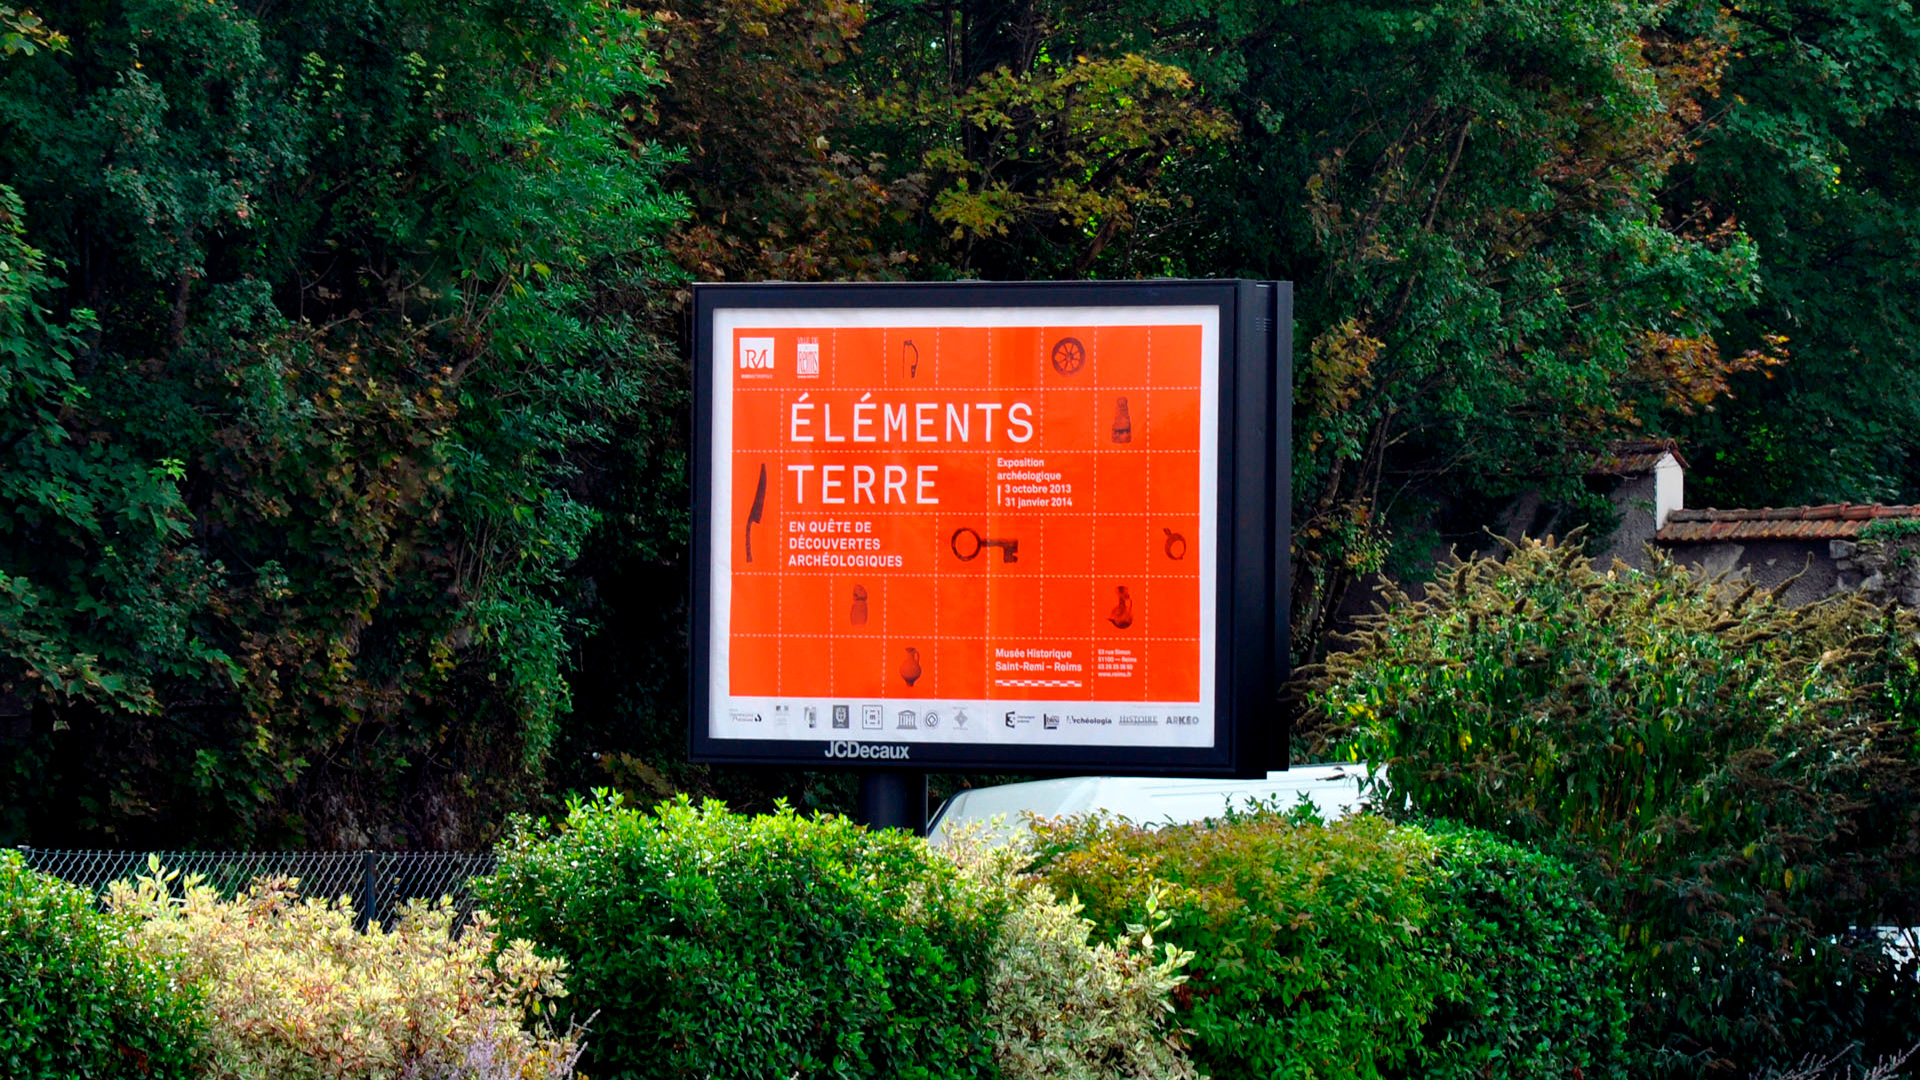 elements-terre-archeologie-exposition-reims-plastac-affiche